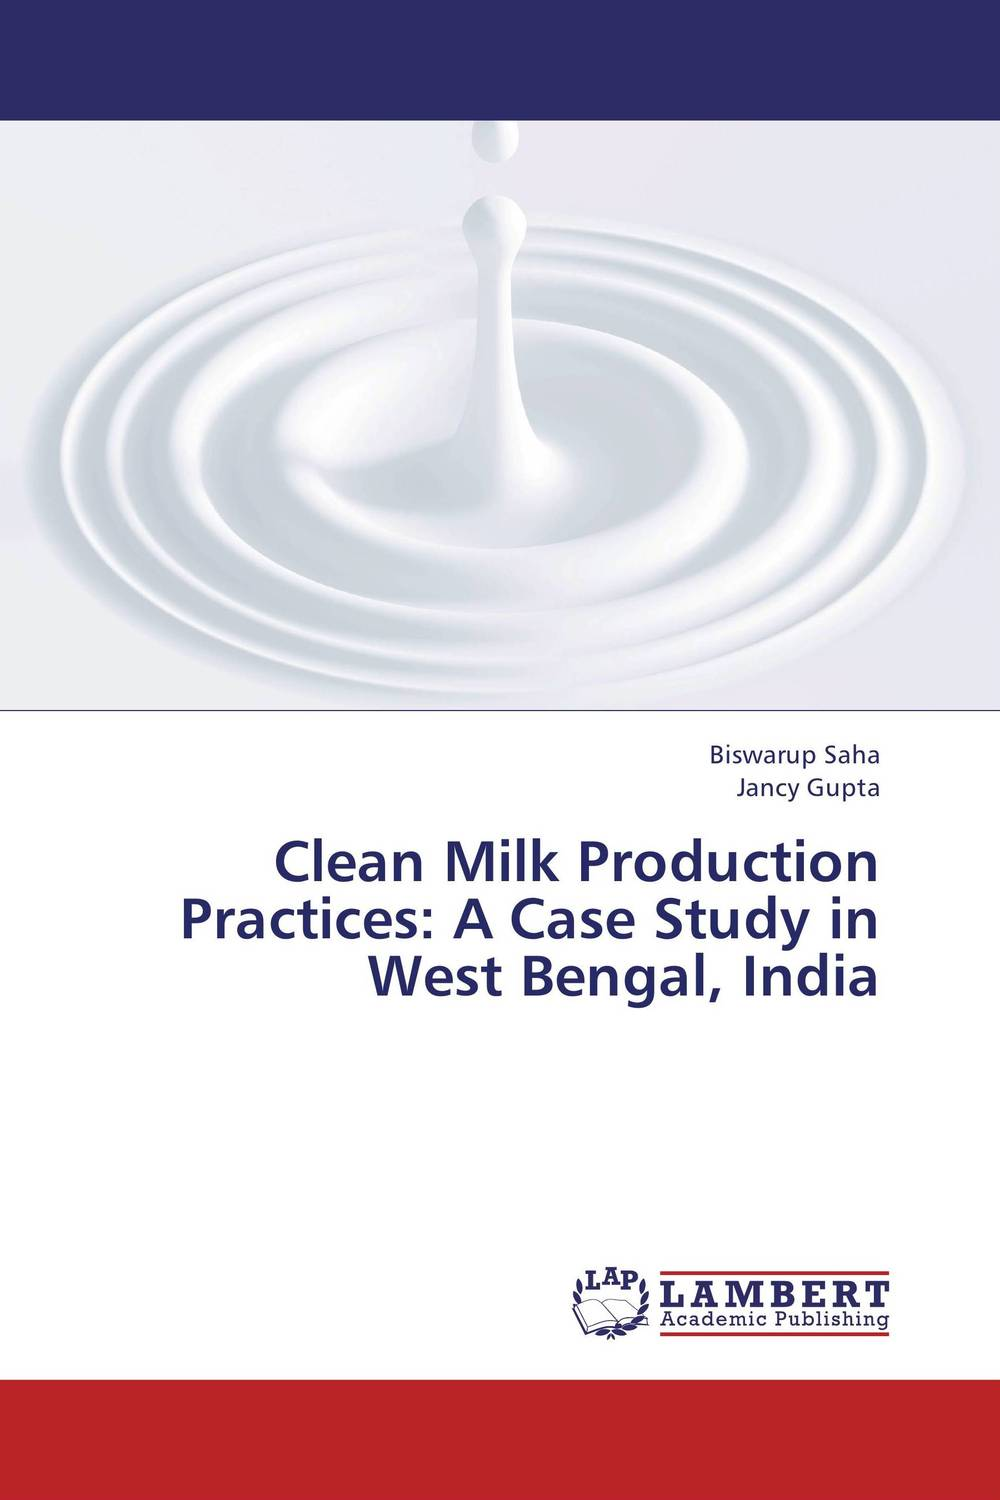 Clean Milk Production Practices: A Case Study in West Bengal, India